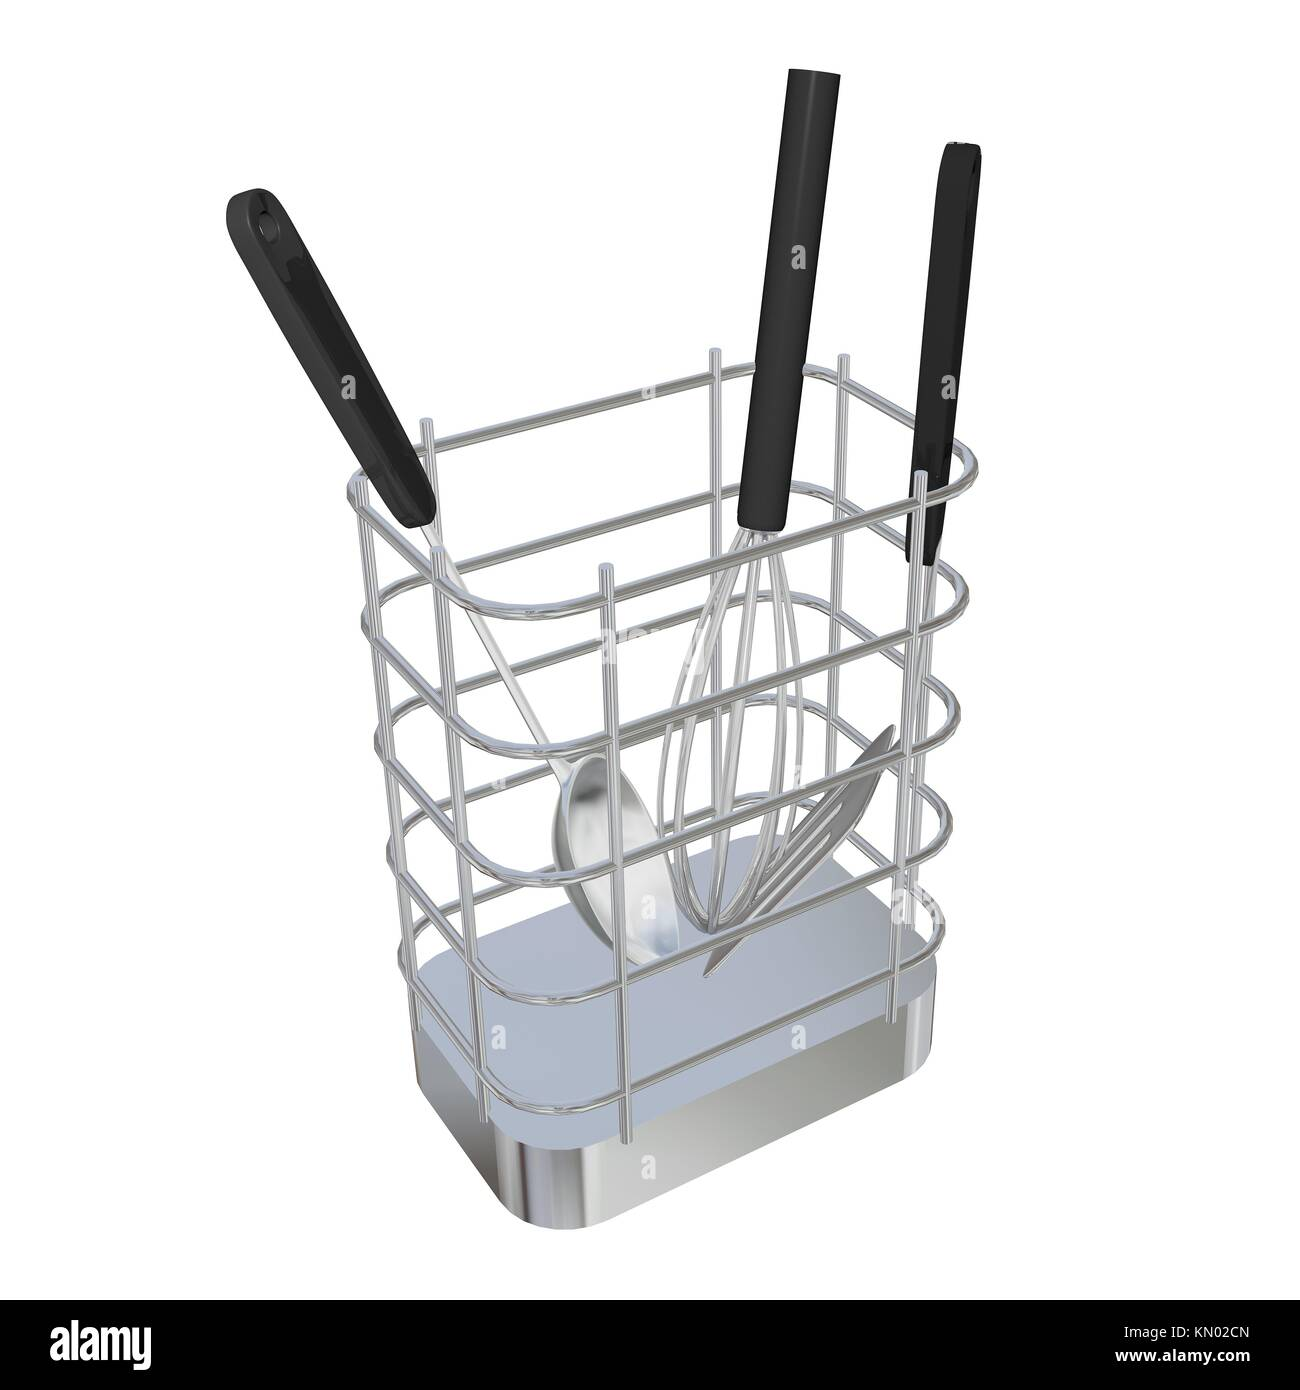 Stainless Steel Wire Basket Rack Or Holder With Frying Laddle Spoon Diagram And Egg Beater 3d Illustration Isolated Against A White Background